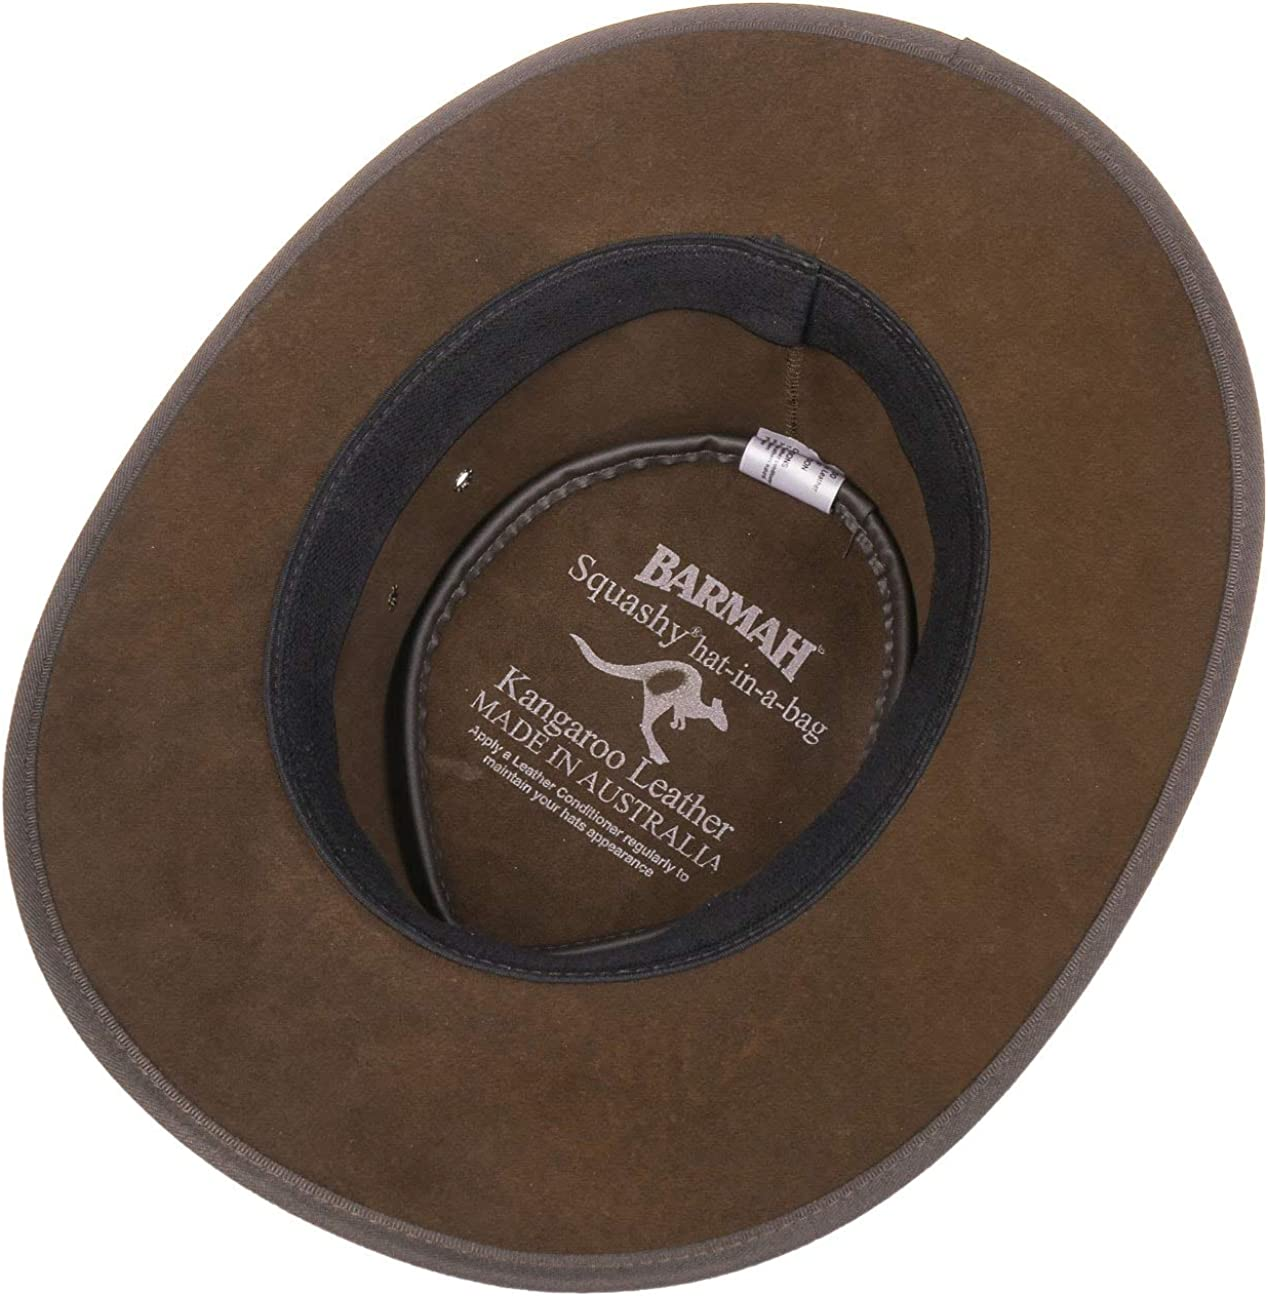 Squashy Crackle Kangaroo Hat BARMAH outdoor hat rollable hat